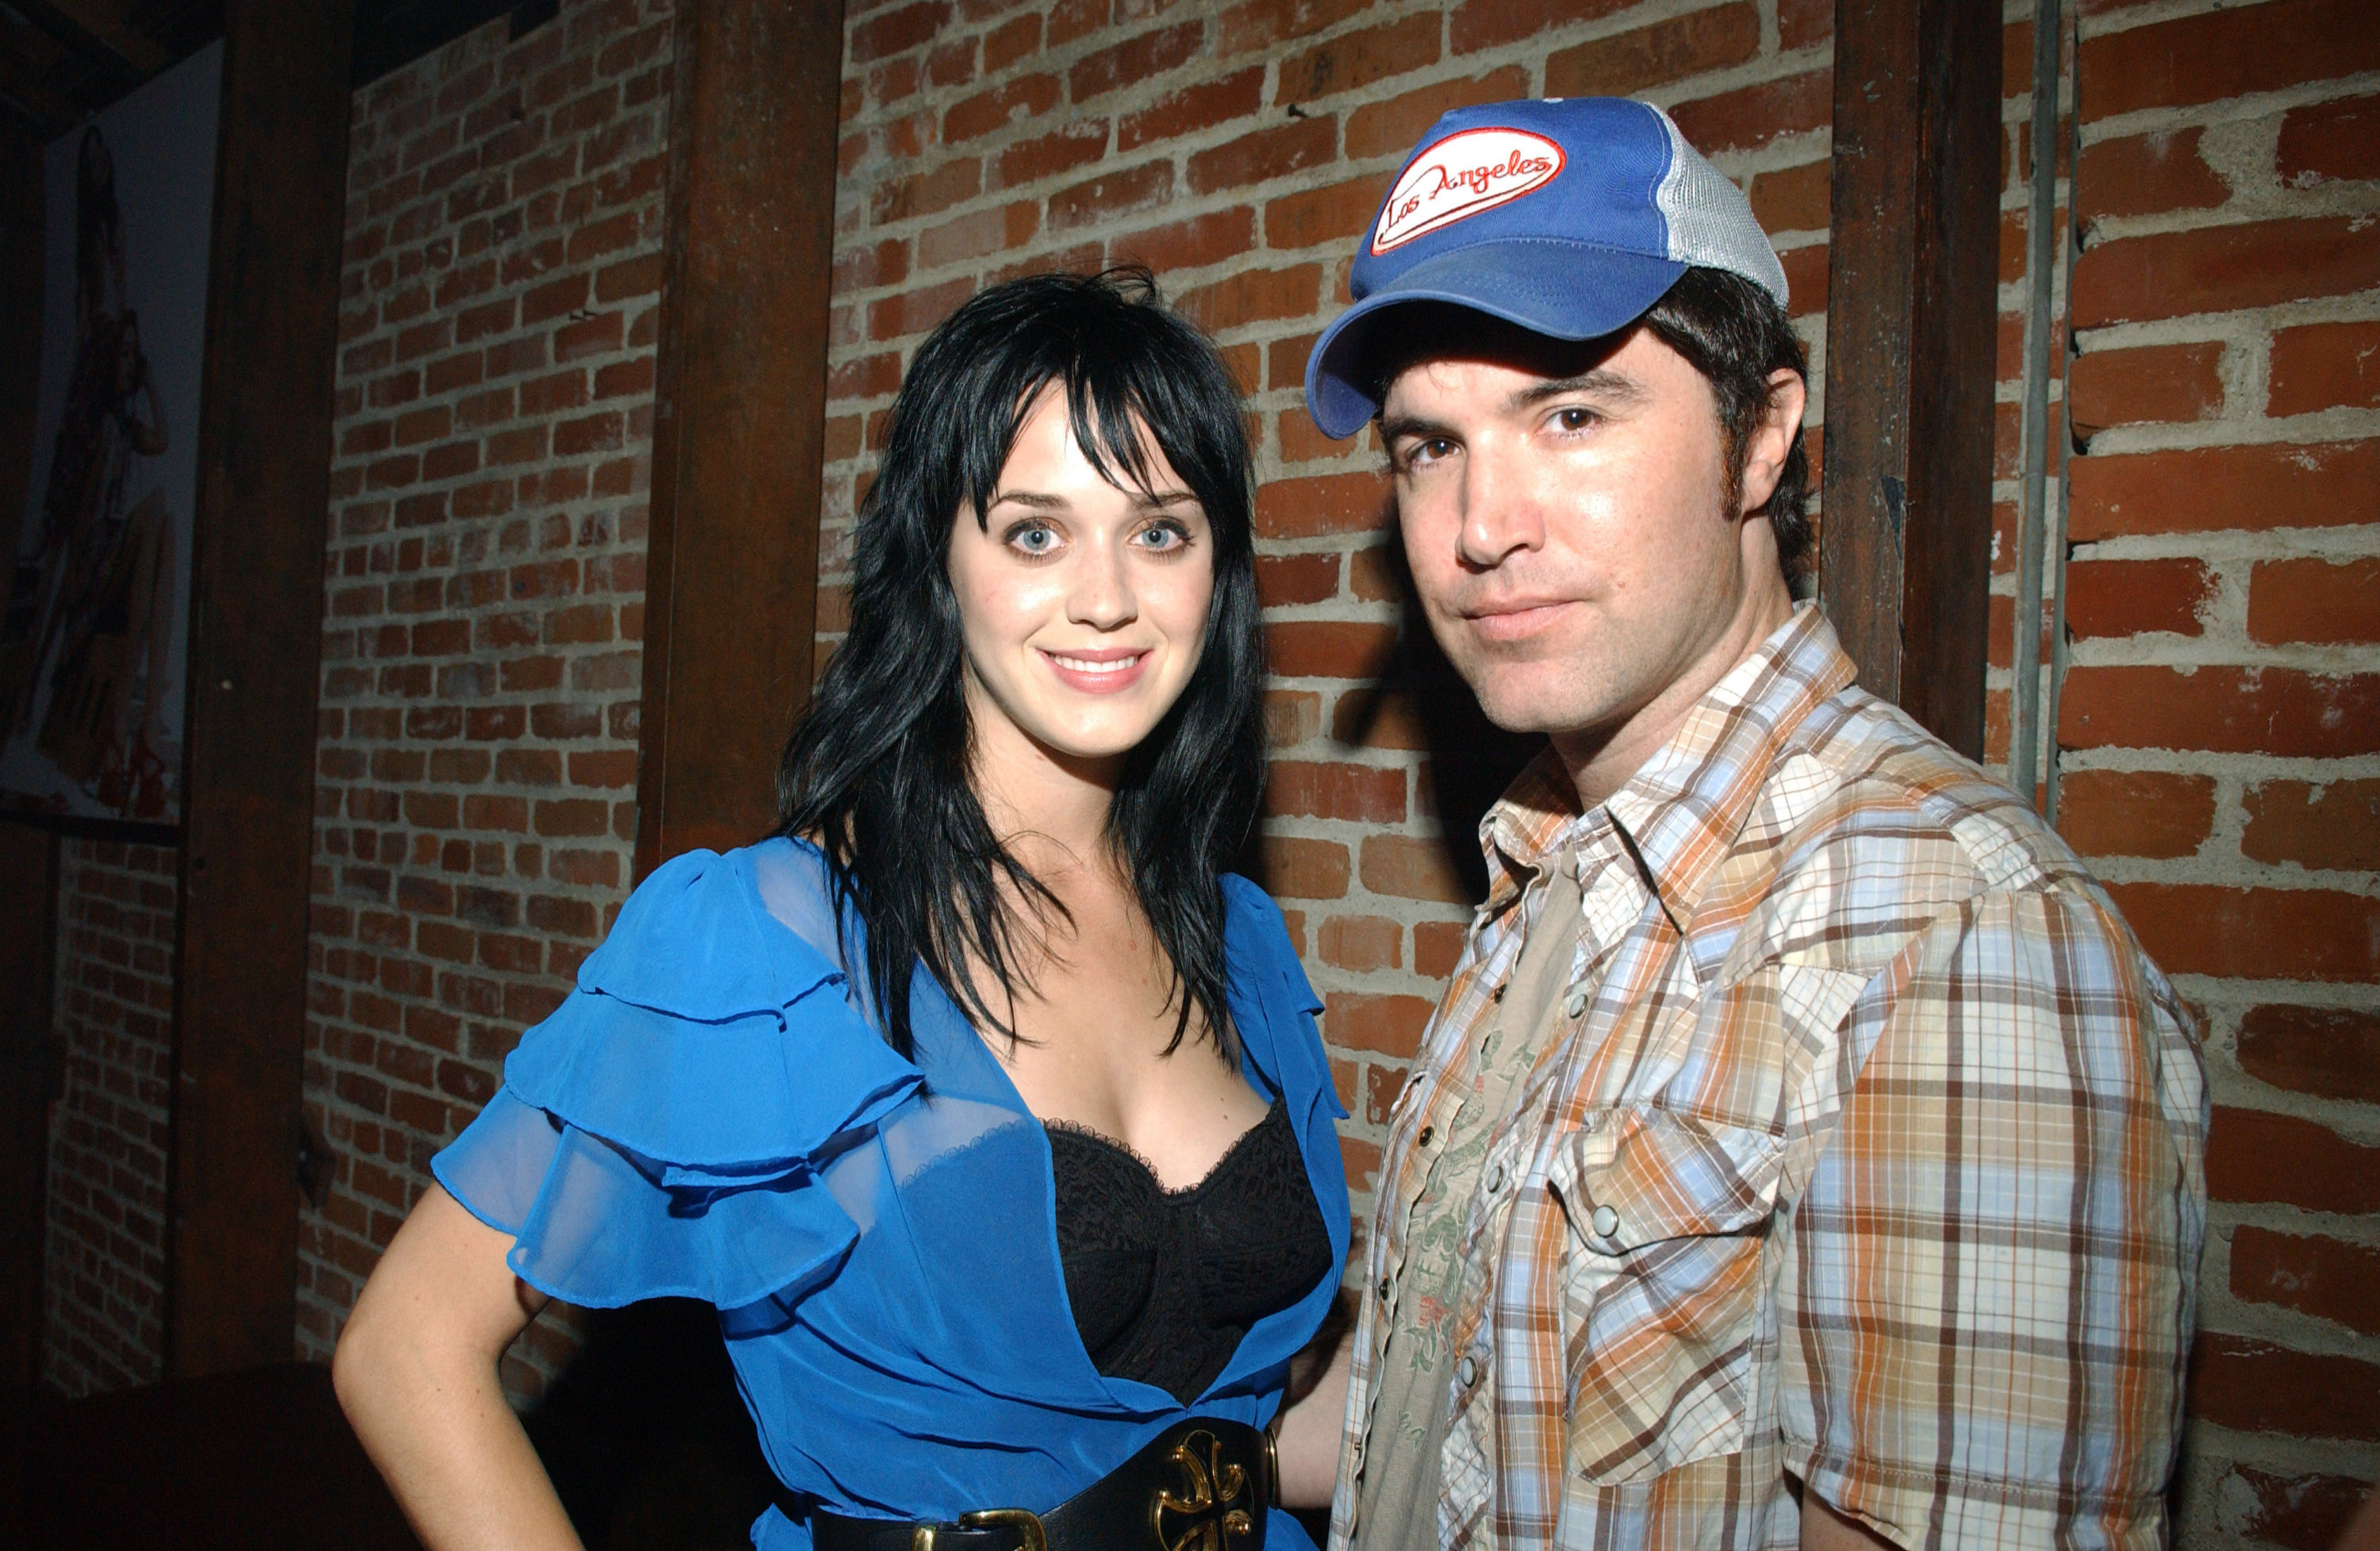 Katy Perry and Myspace founder Tom Anderson